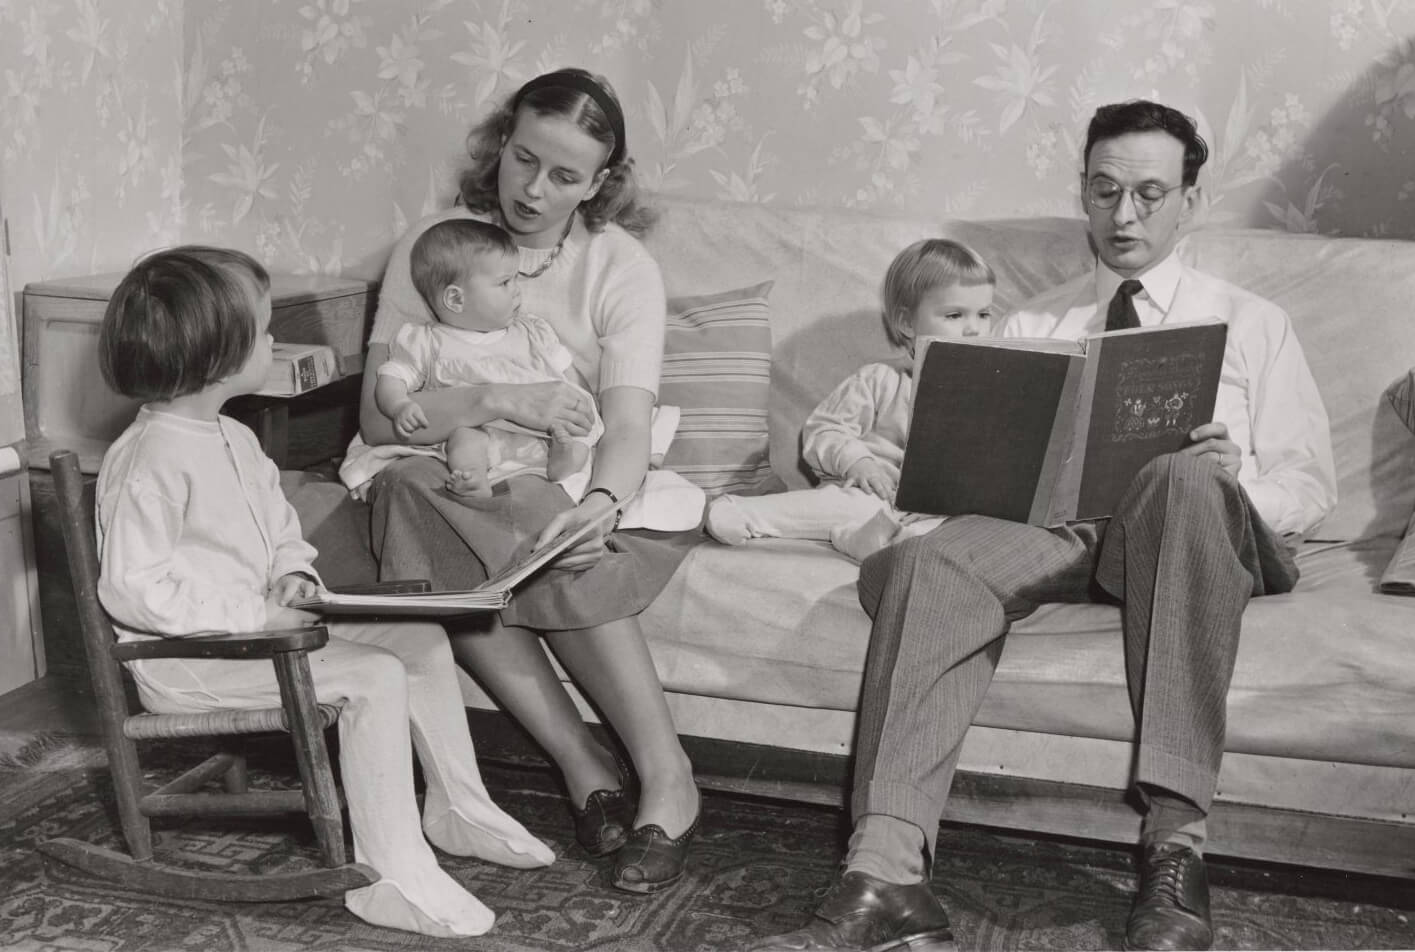 family at home in the 1950s